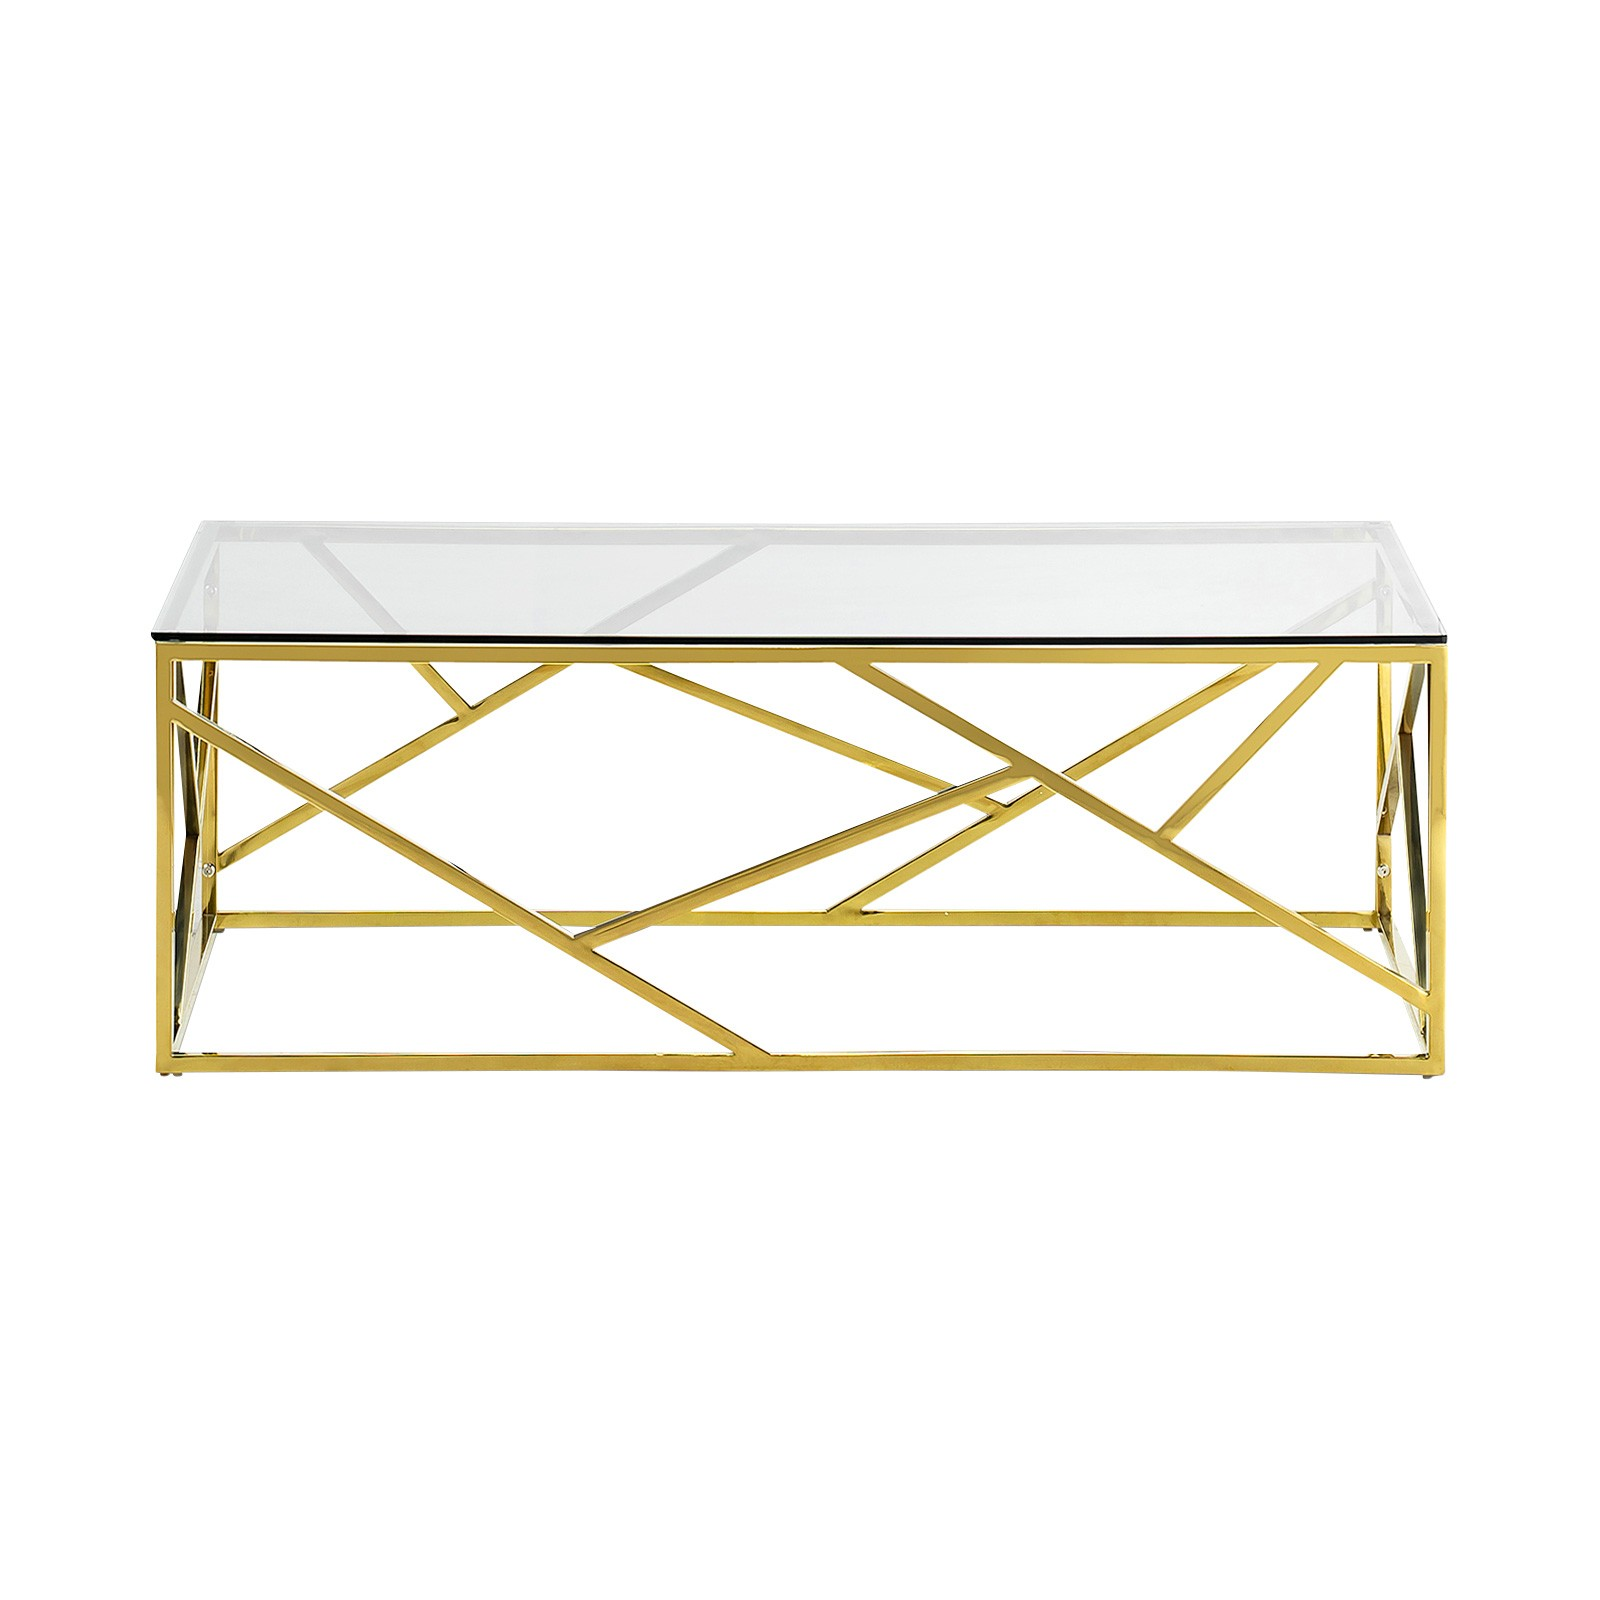 Elena Tempered Glass & Stainless Steel Coffee Table, 120cm